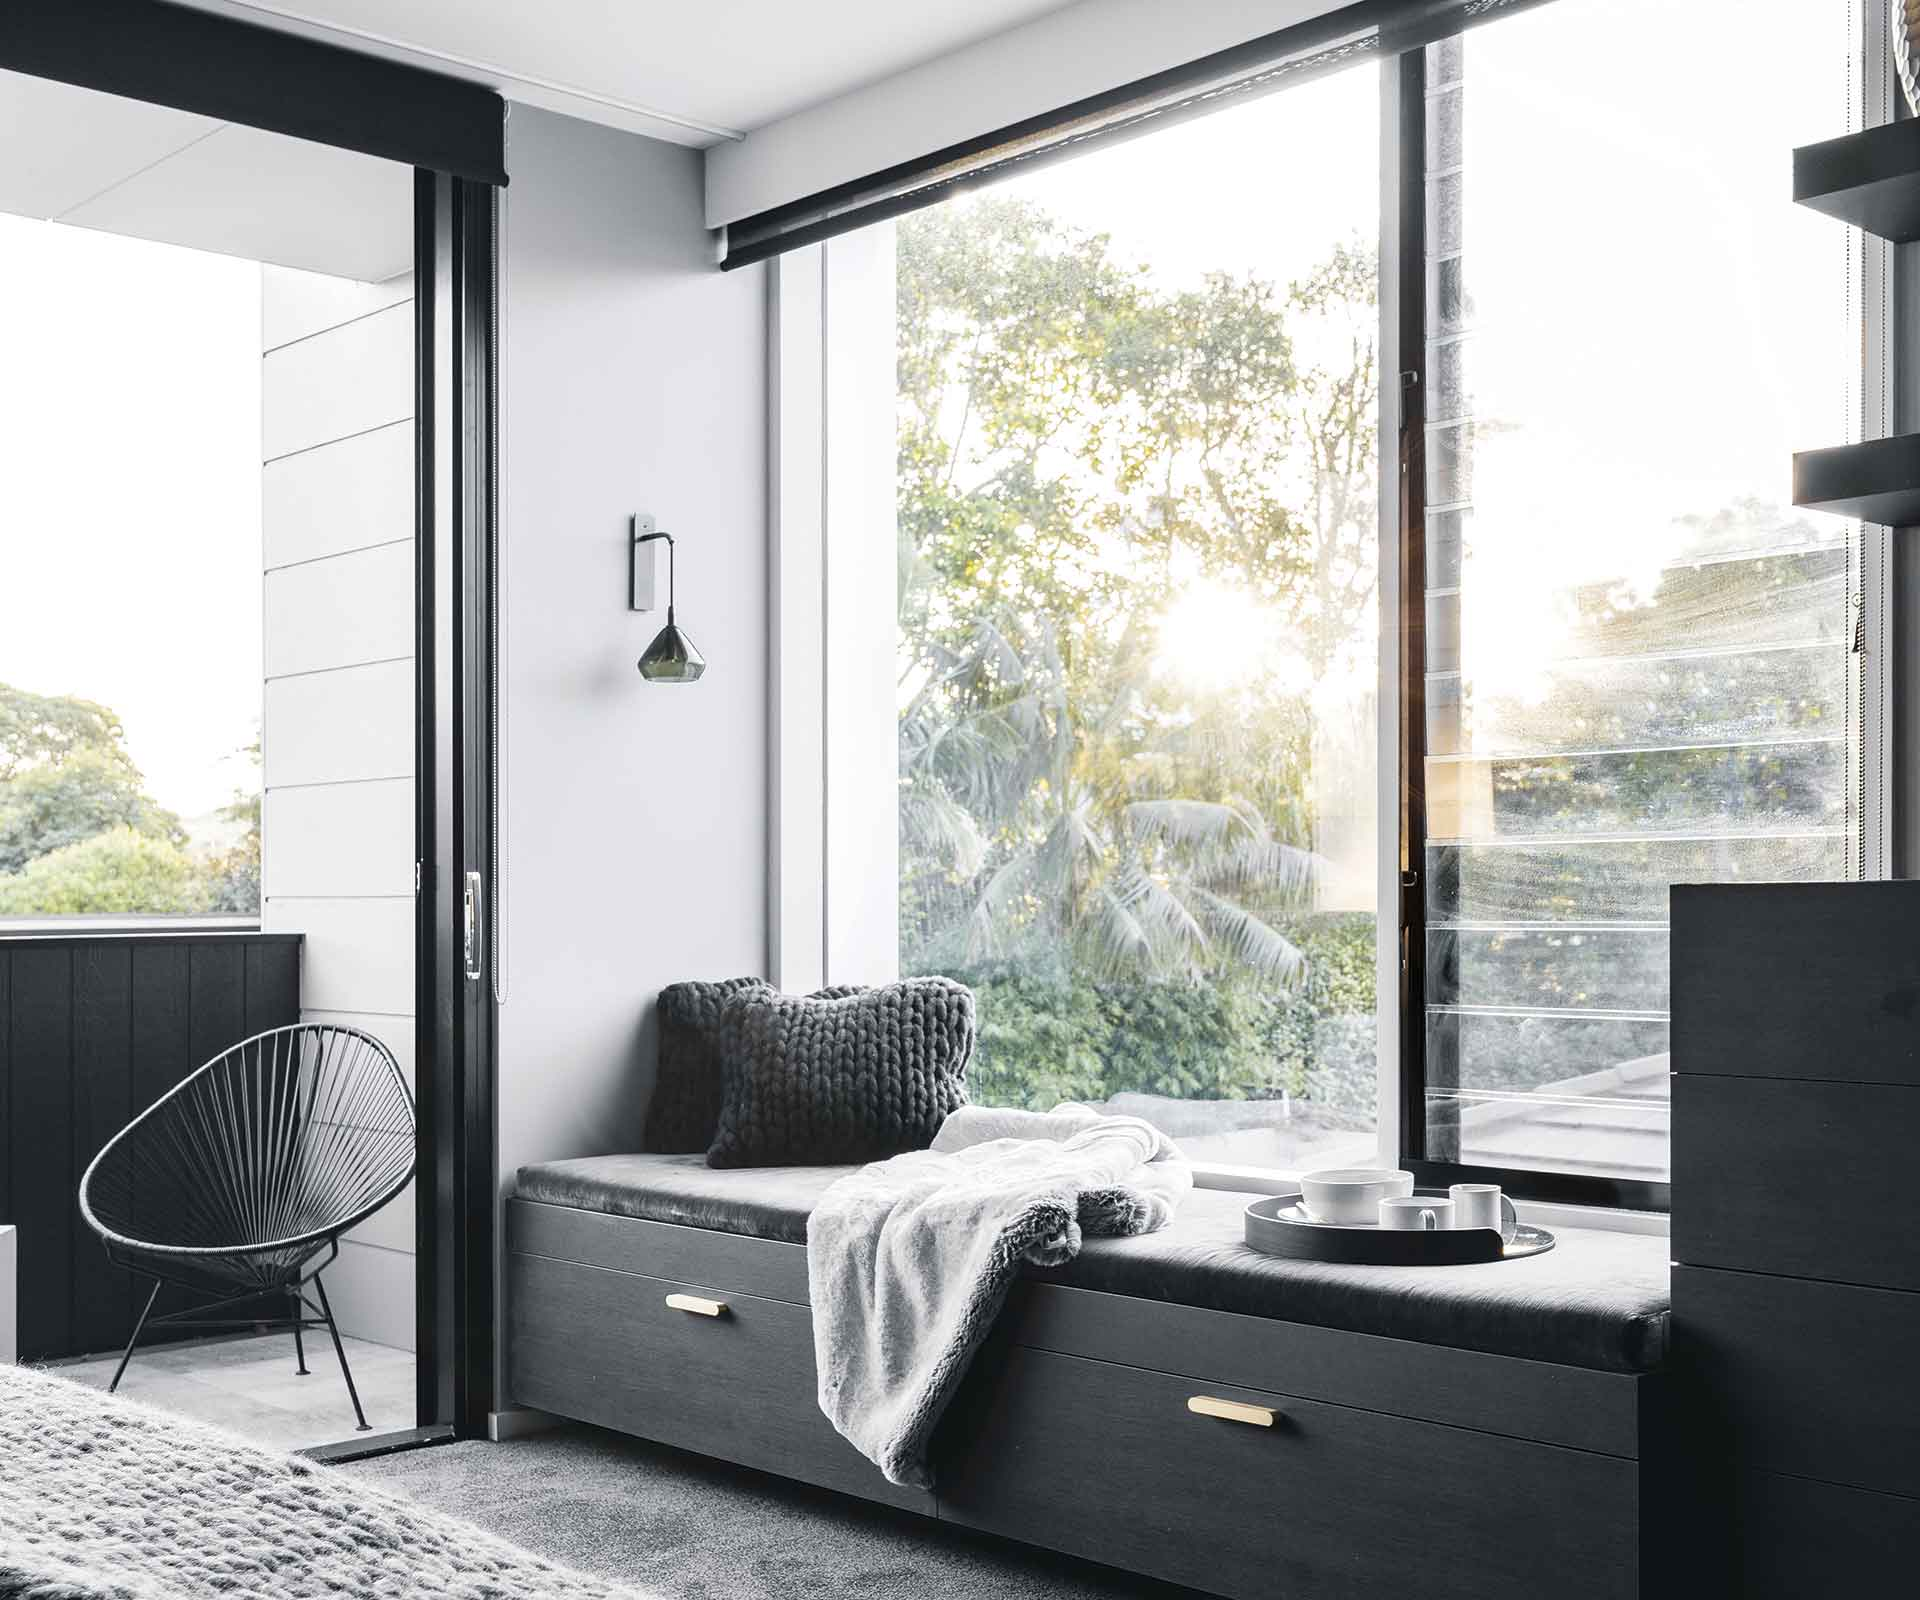 5 window nook ideas to add to your home